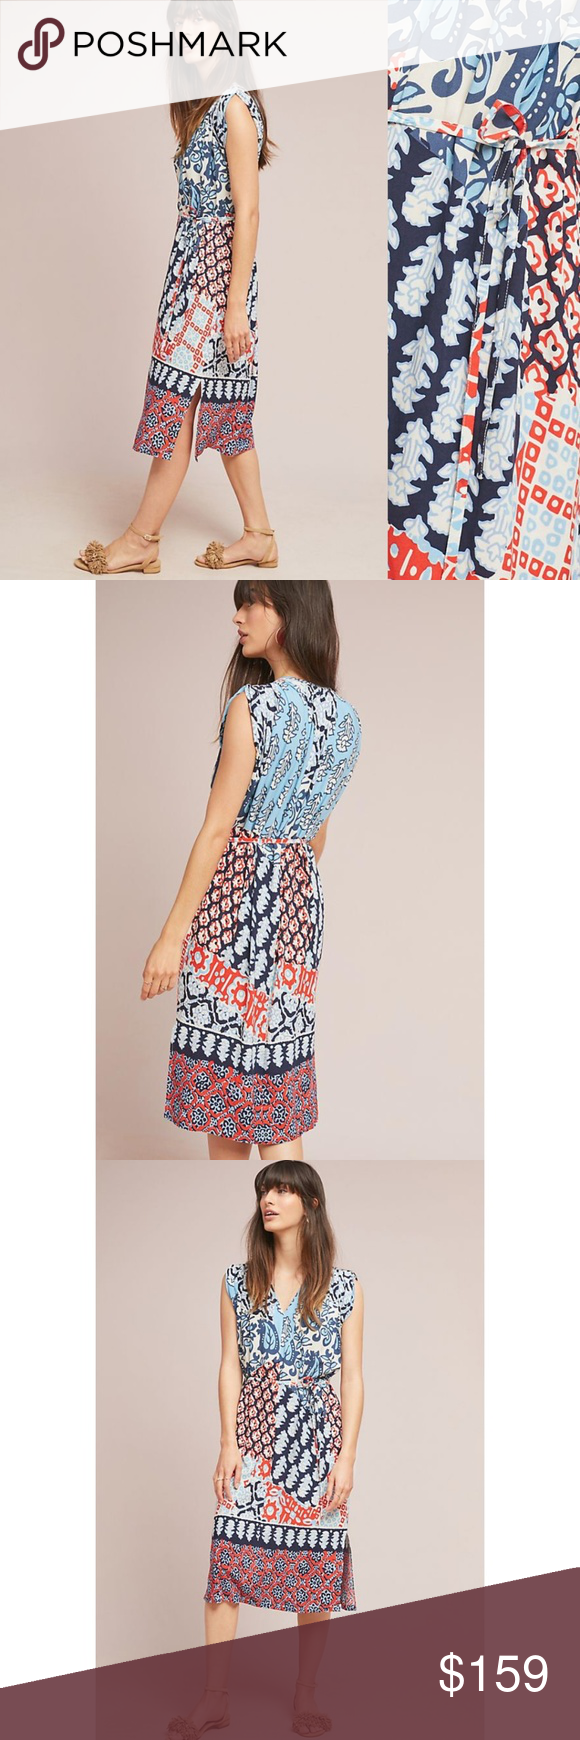 8bebed7daadd HTF NWT ANTHROPOLOGIE Patchwork Pleated Midi Dress HTF Brand new with tags  NWT ANTHROPOLOGIE Porridge Patchwork